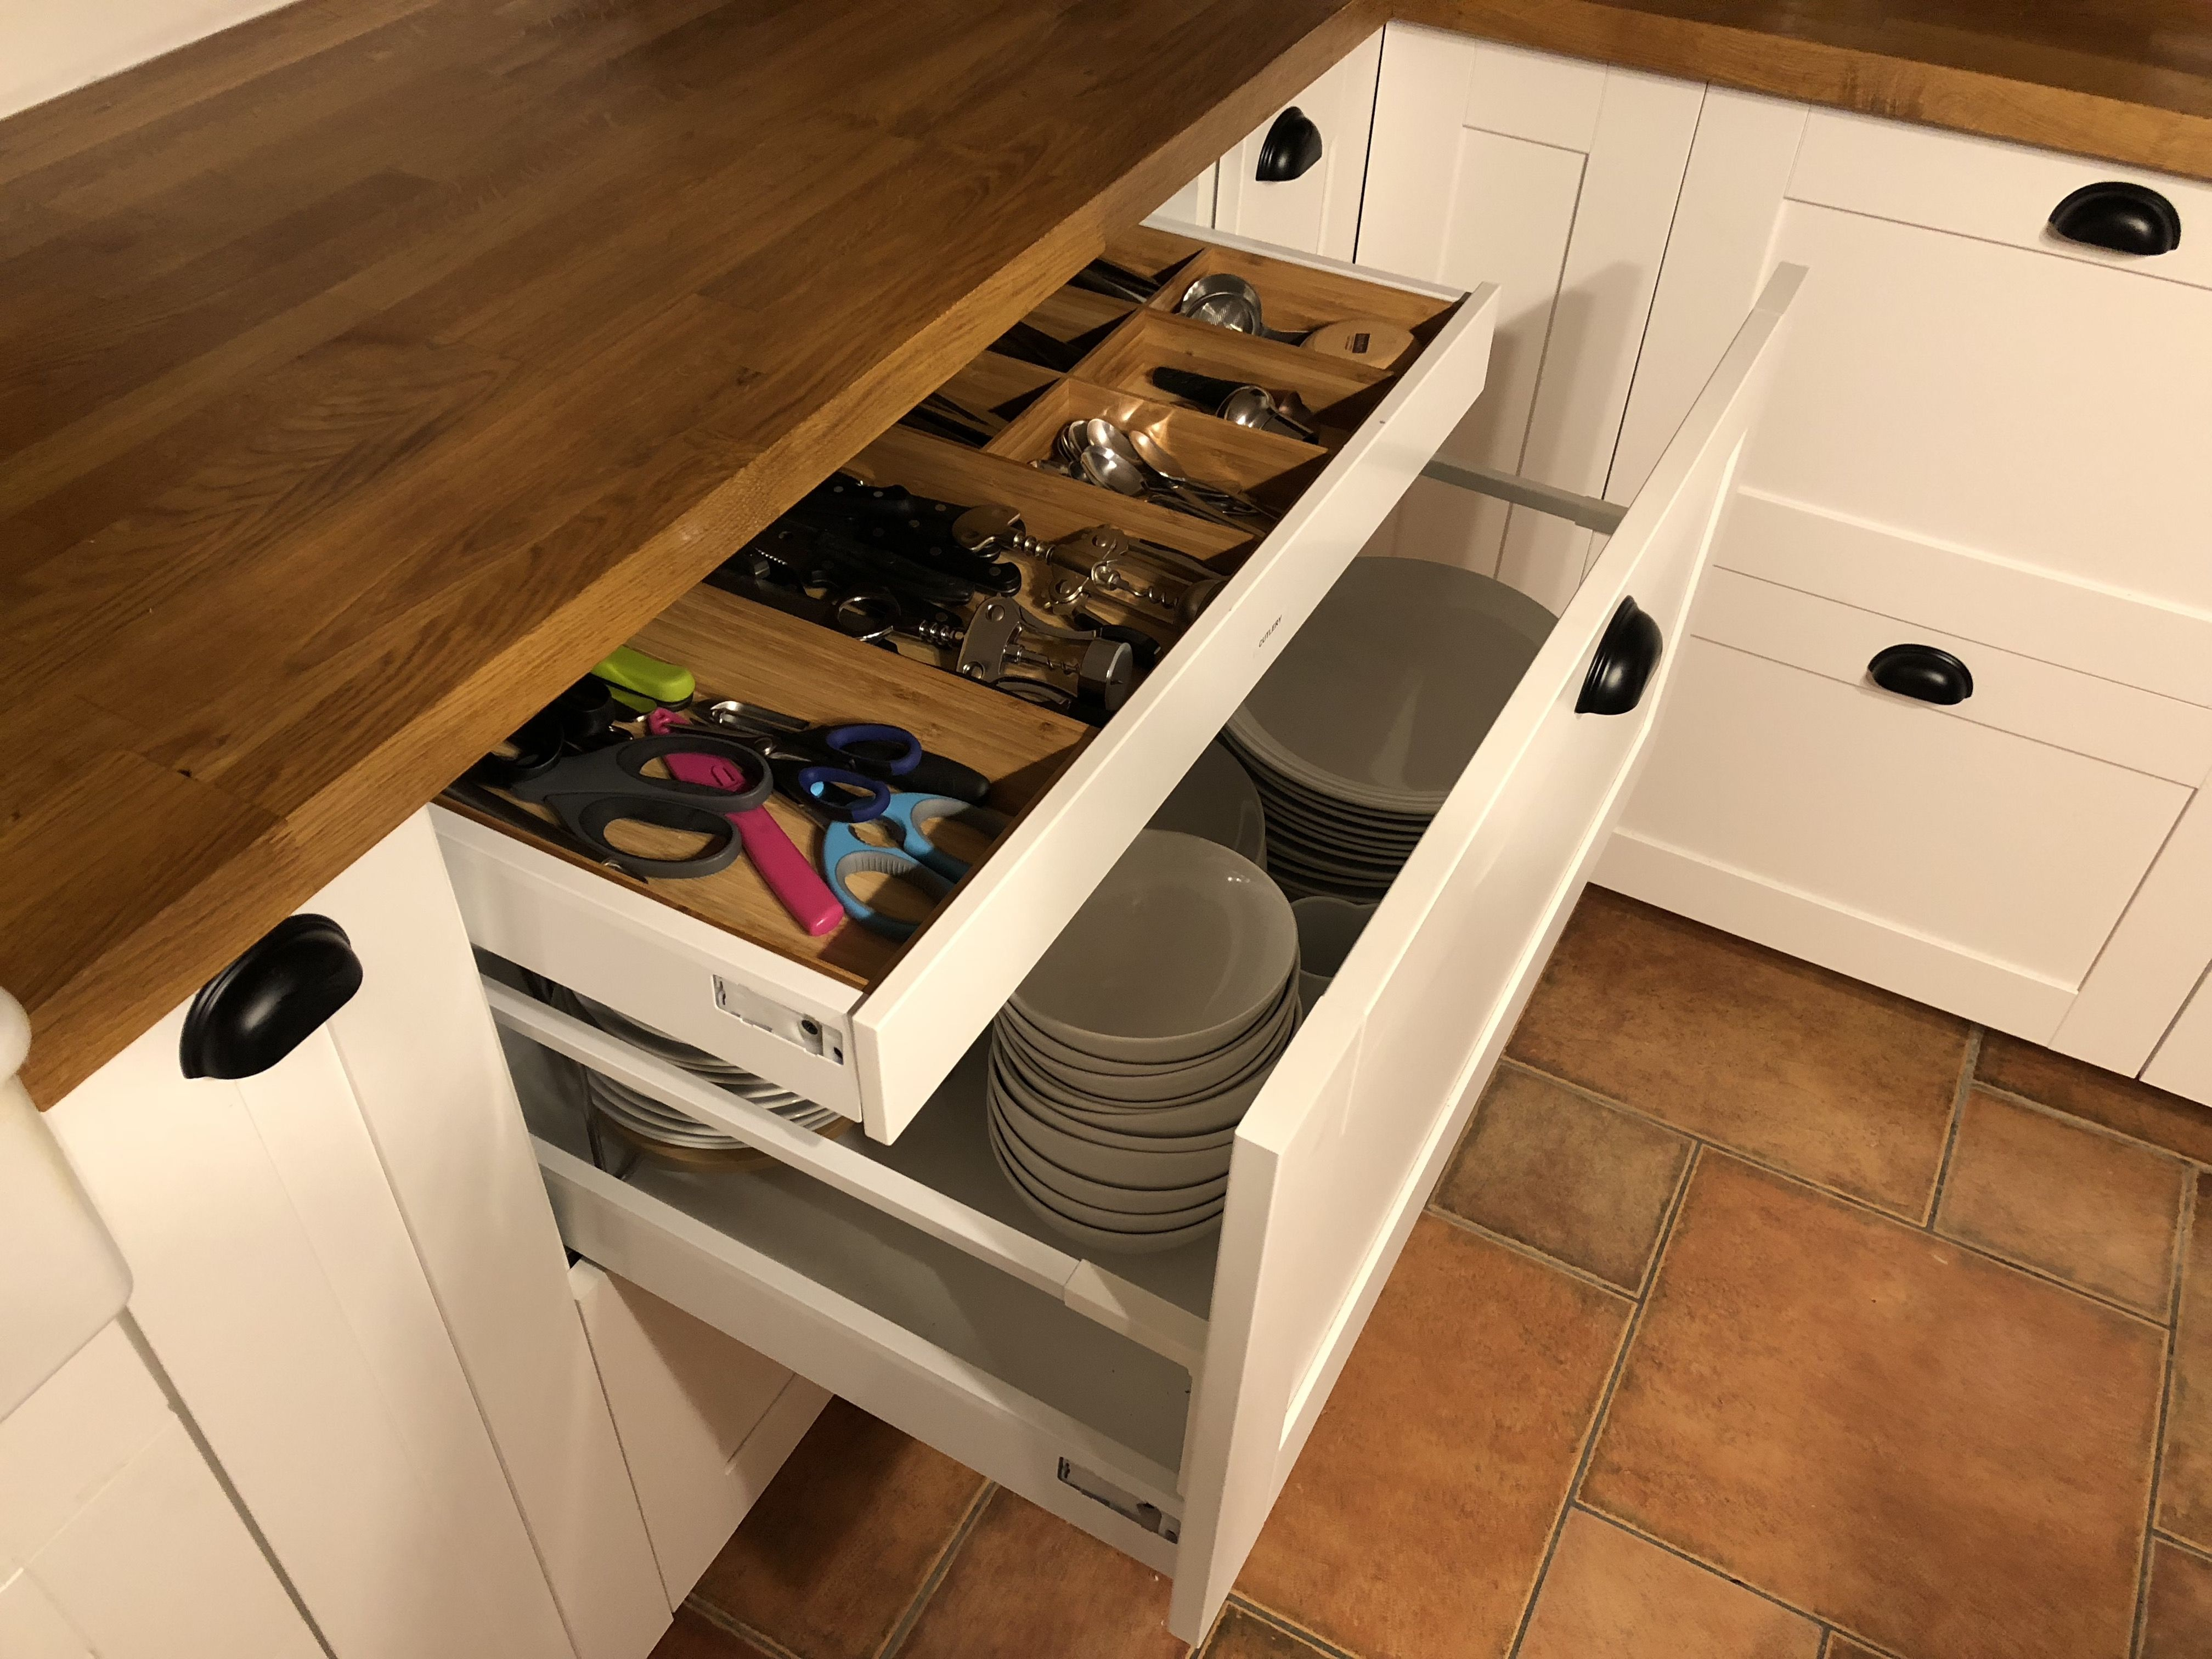 Ikea Large Drawers With Smaller Drawer Inside For Cutlery Large Drawers Kitchen Cupboards Small Drawers